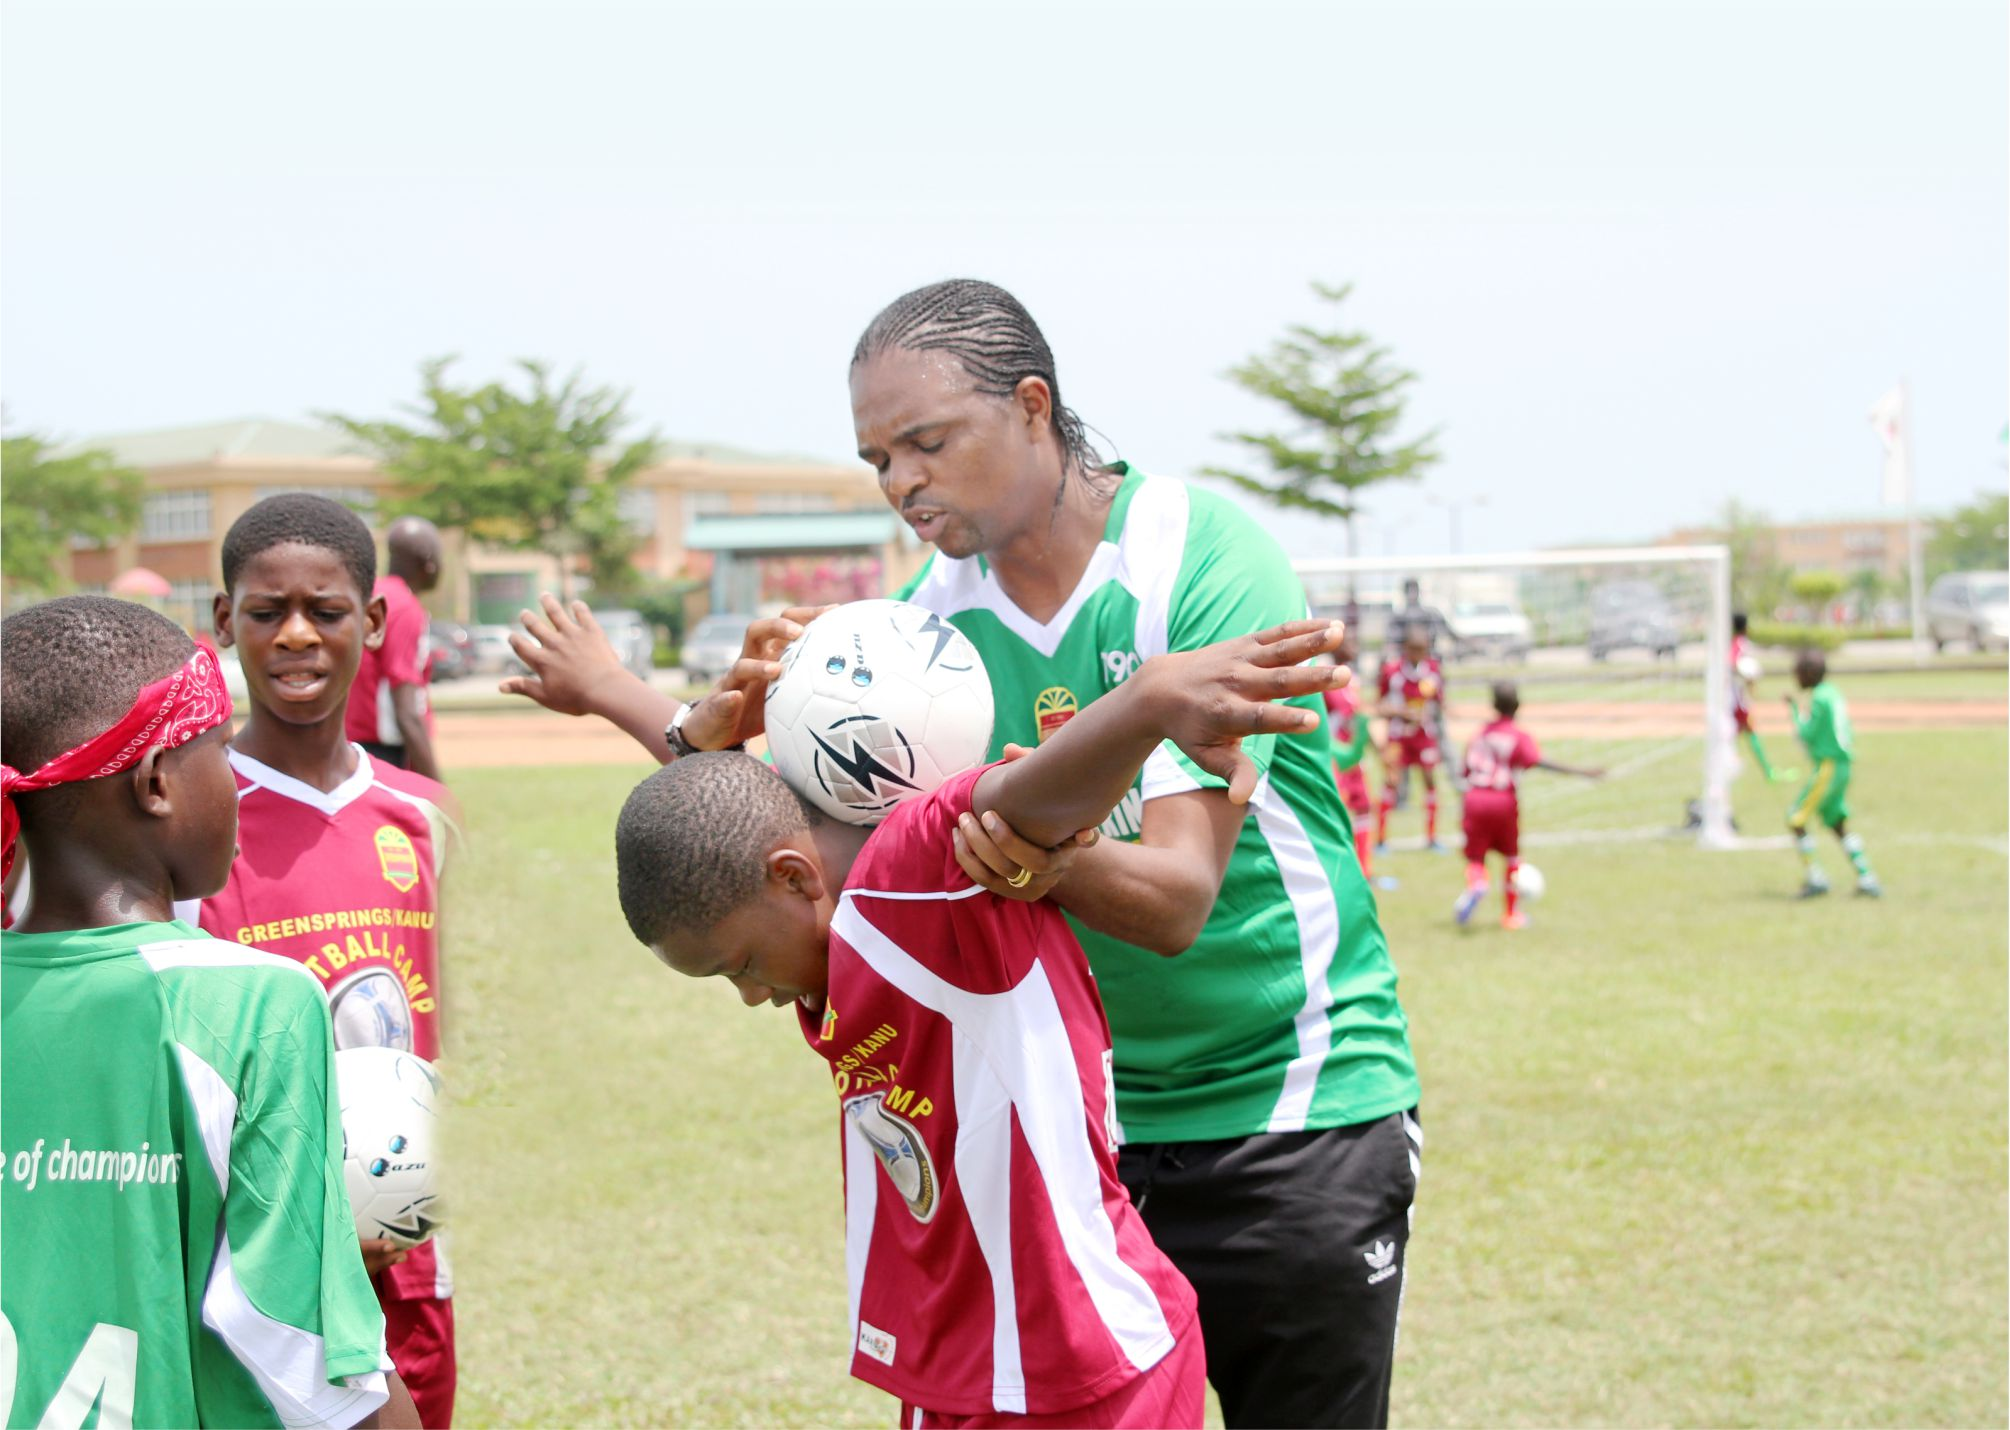 Would You like Your Child to be Mentored by a Football Legend? Register For the Greensprings/ Kanu Camp Here